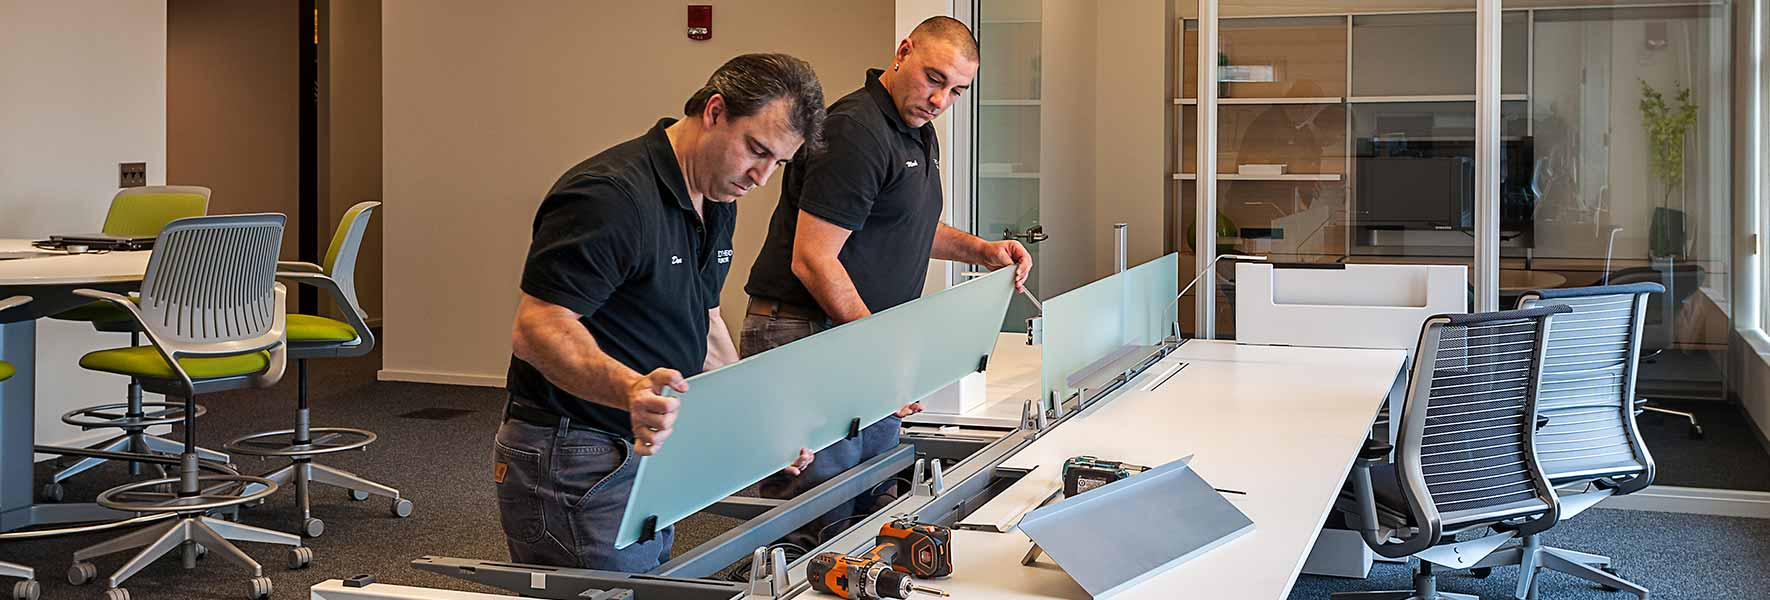 Office movers installing a workstation during move services